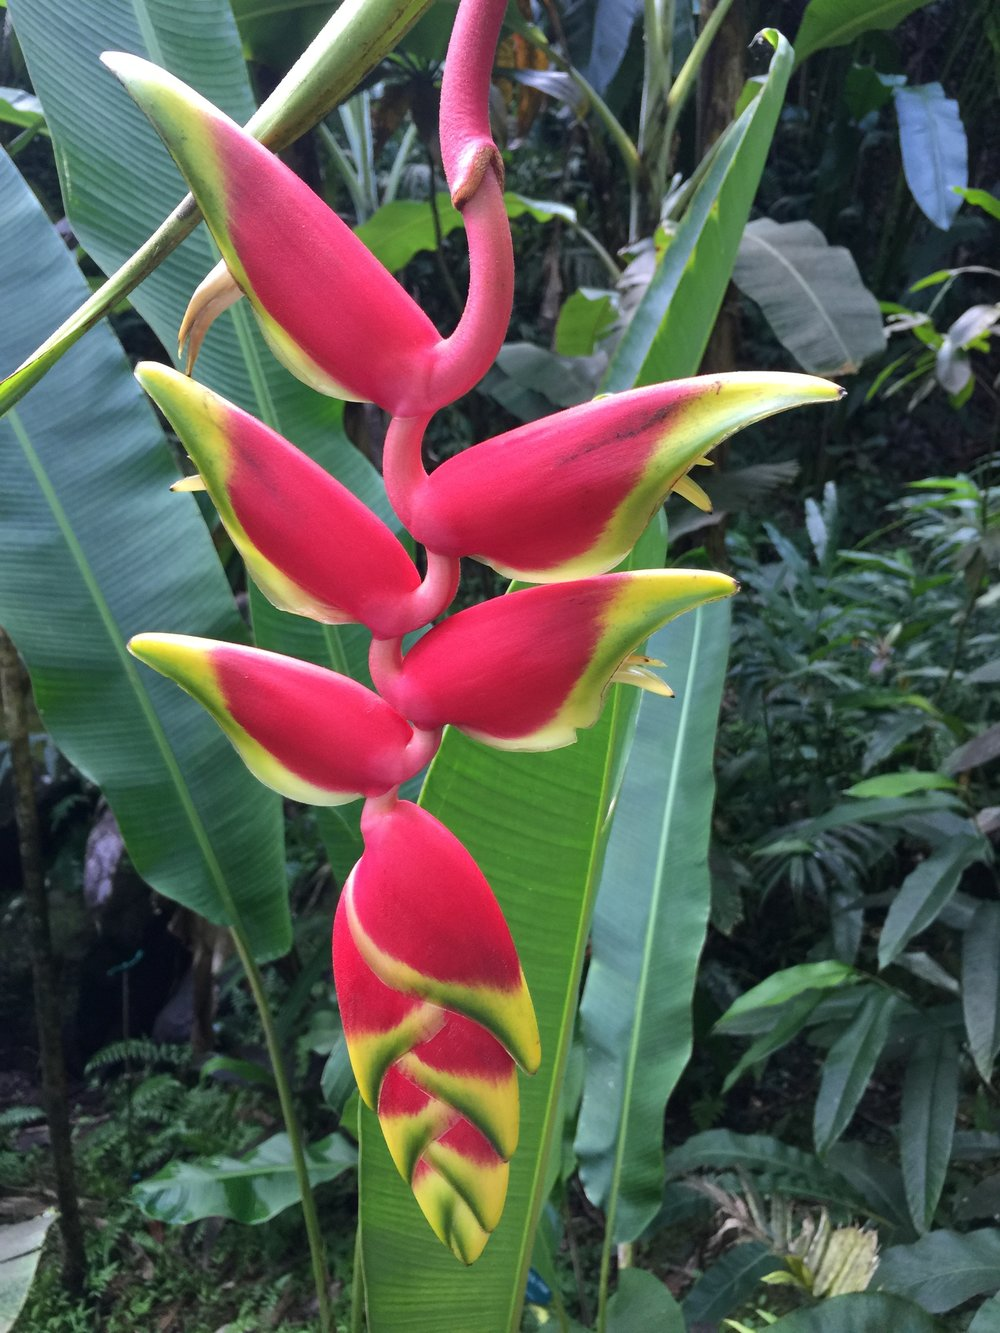 Proud, vibrant colors flaunted in the Hilo botantical gardens.